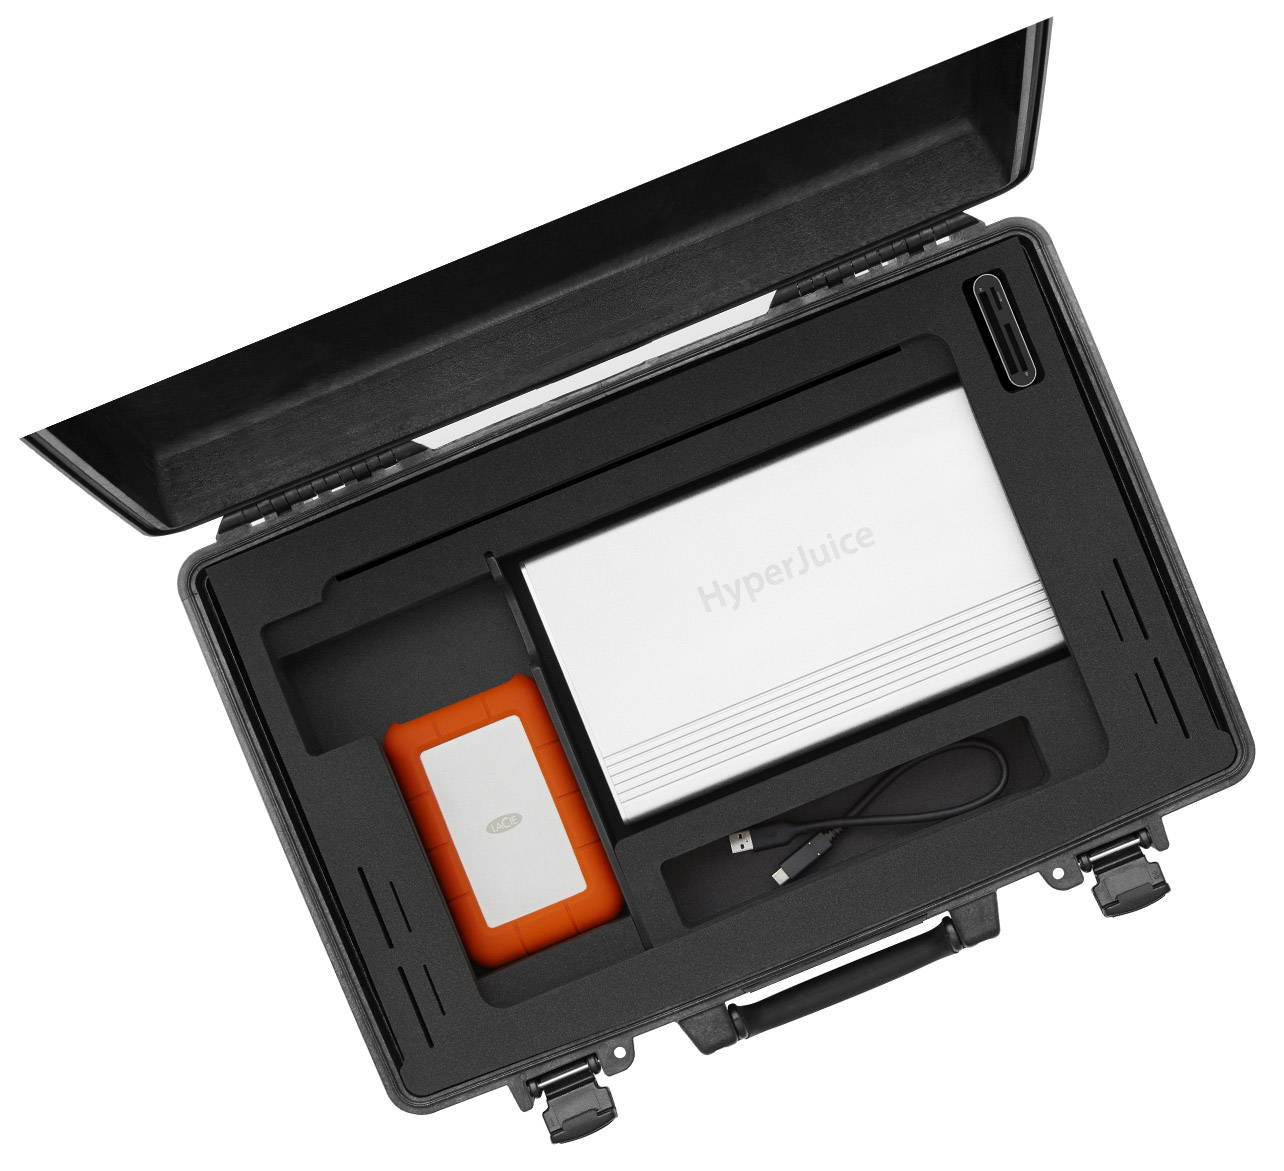 iworkcase open showing equipment storage design  on white